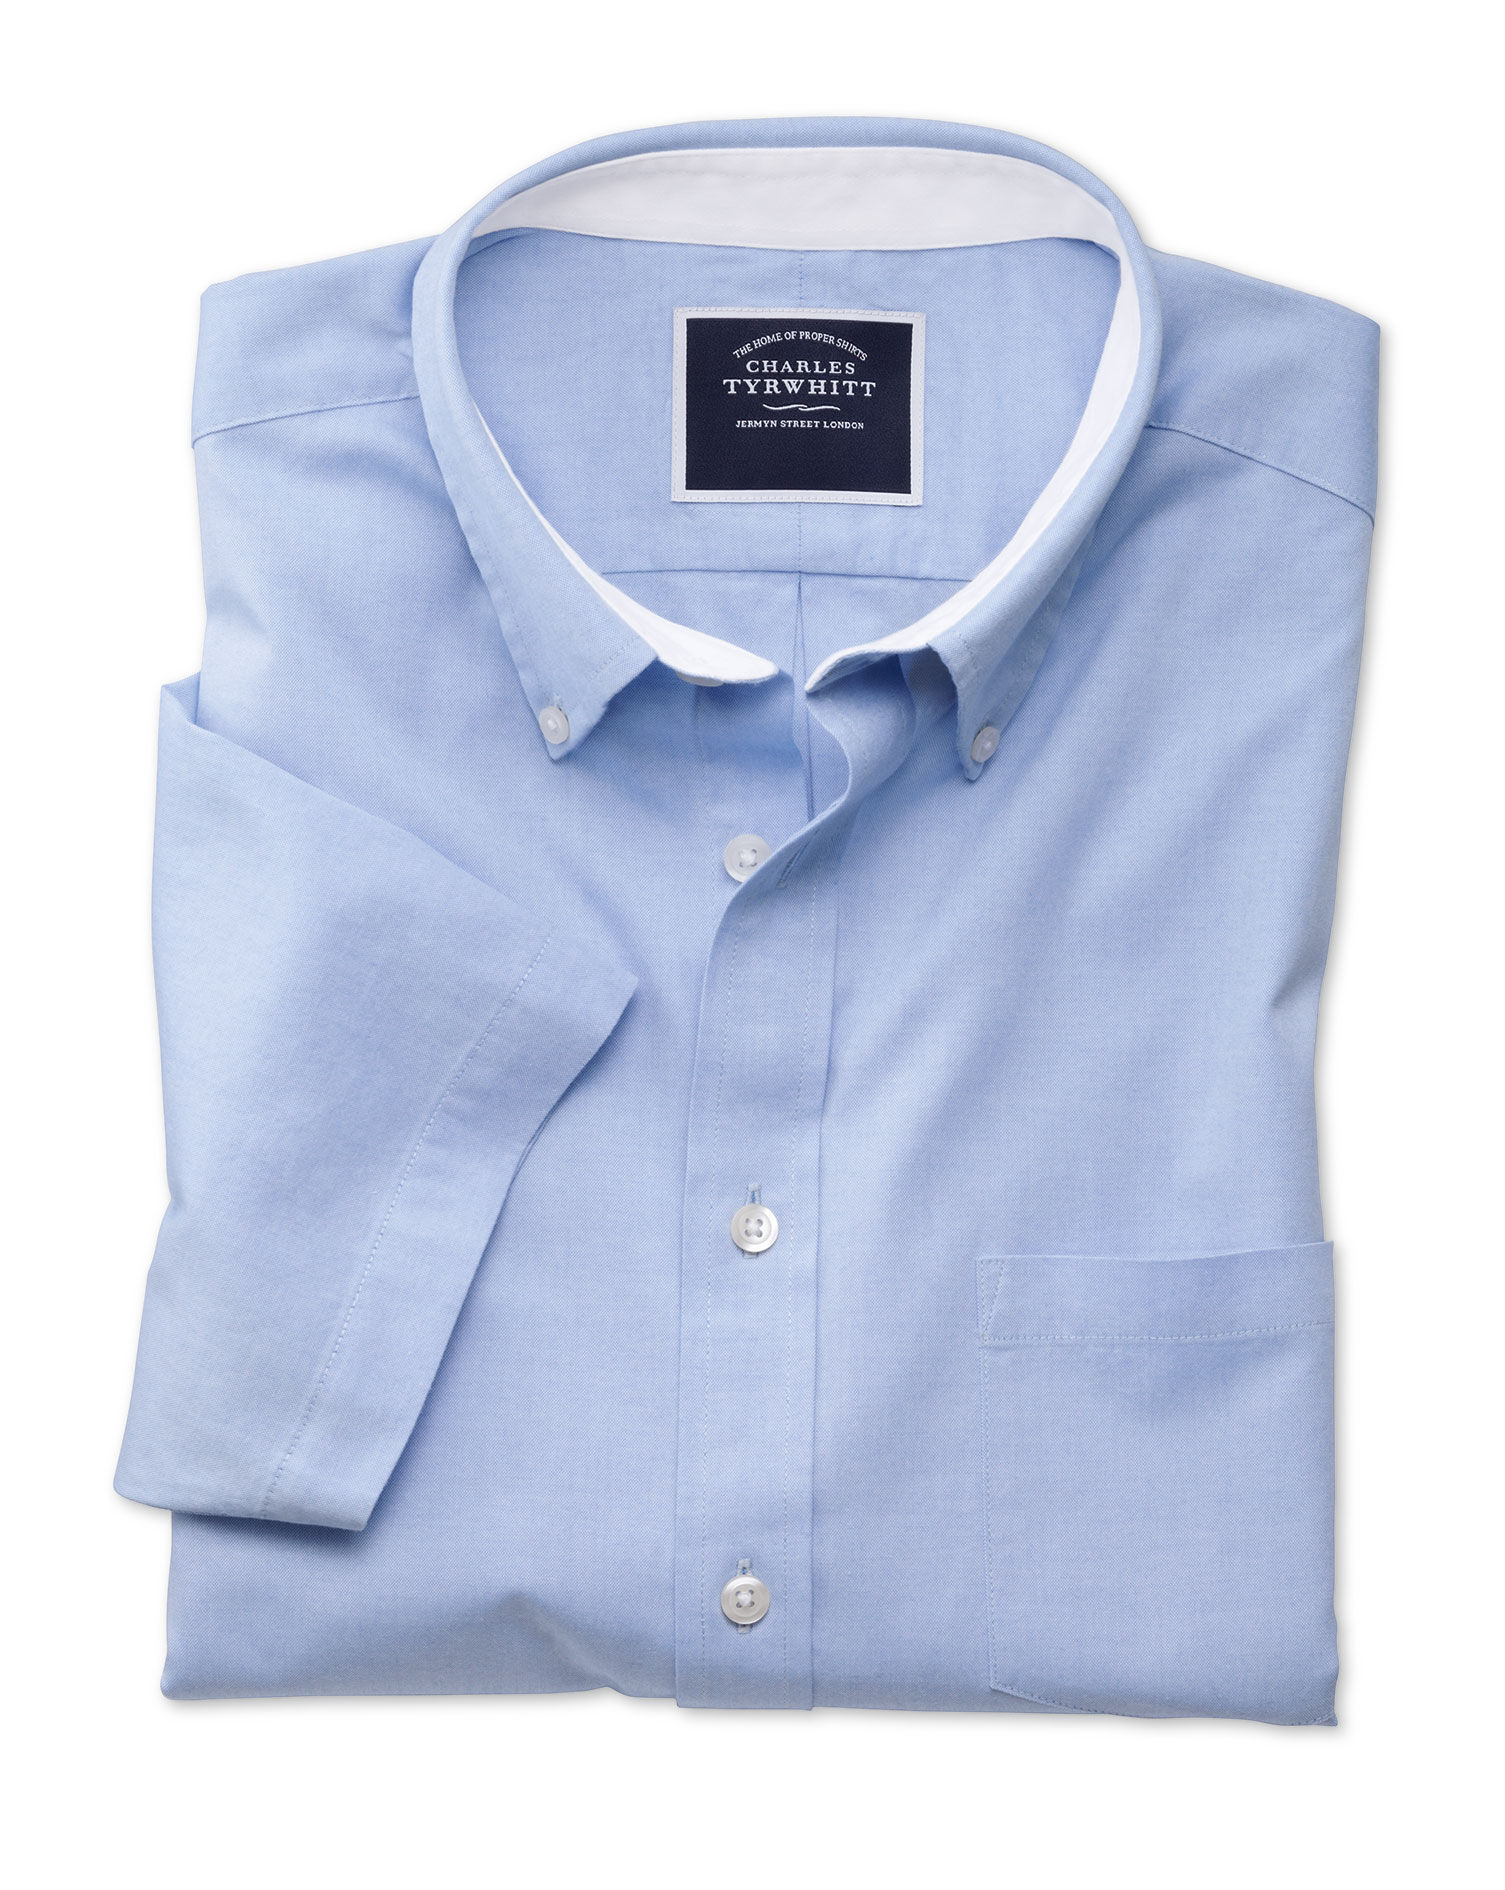 Classic Fit Button-Down Washed Oxford Short Sleeve Sky Blue Cotton Shirt Single Cuff Size XXXL by Ch